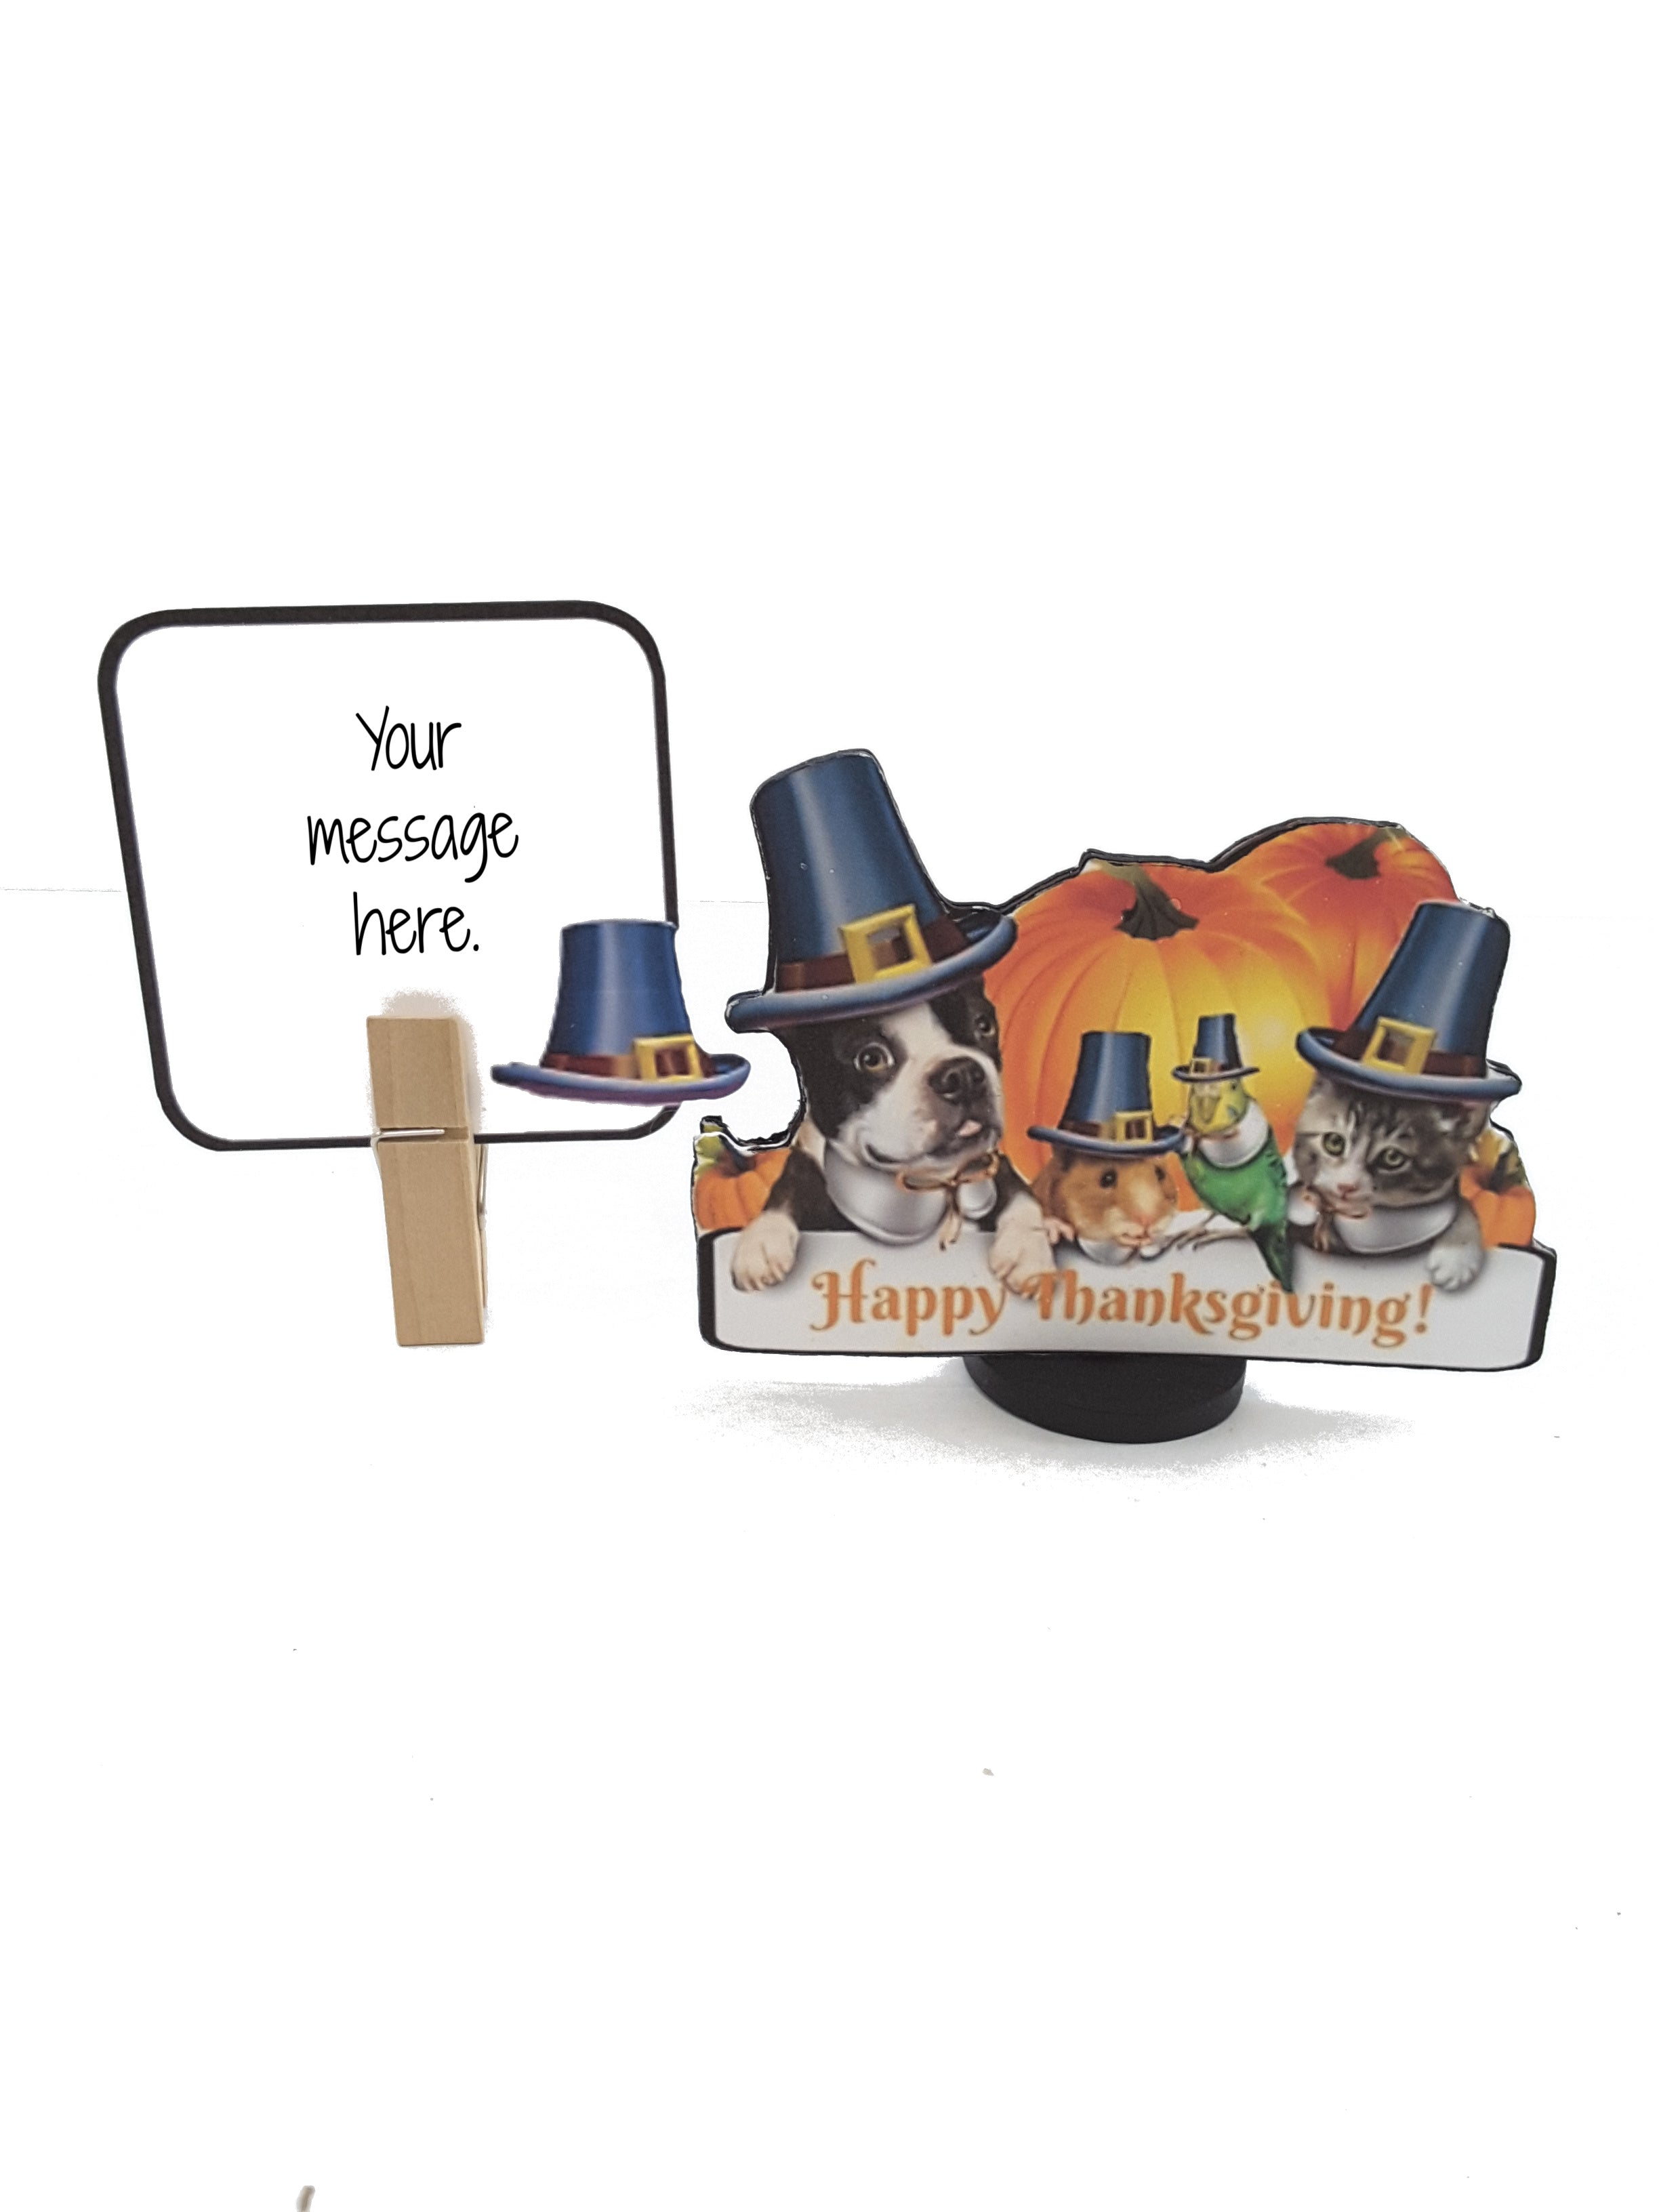 HAPPY THANKSGIVING FROM THE ANIMAL FAMILY 3D GREETING CARD GIFT - TheLastWordBish.com